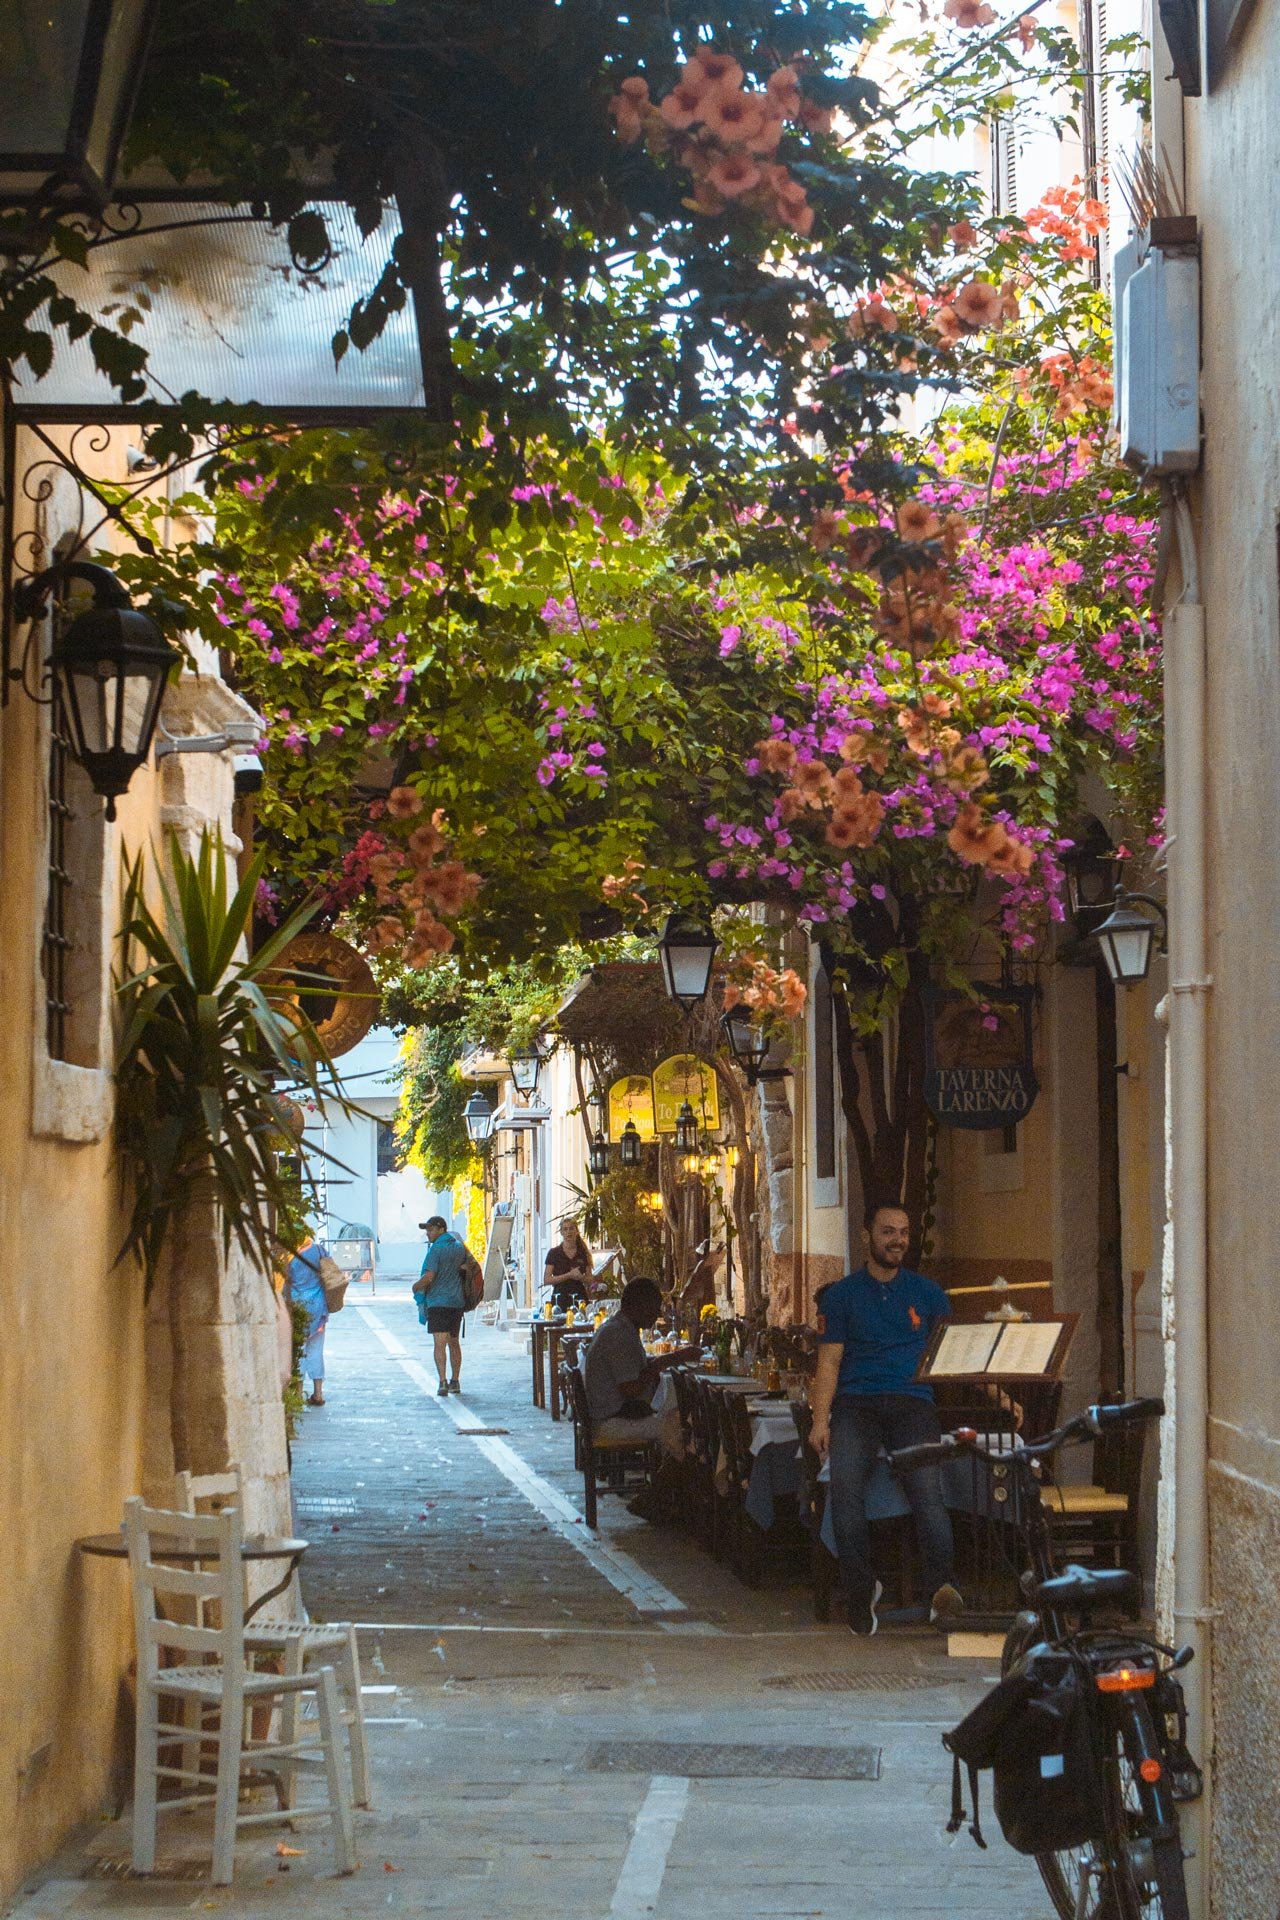 Taking a walk through the original settlement of Rethymno, is to relive its past through distinctive buildings and atmospheric alleyways